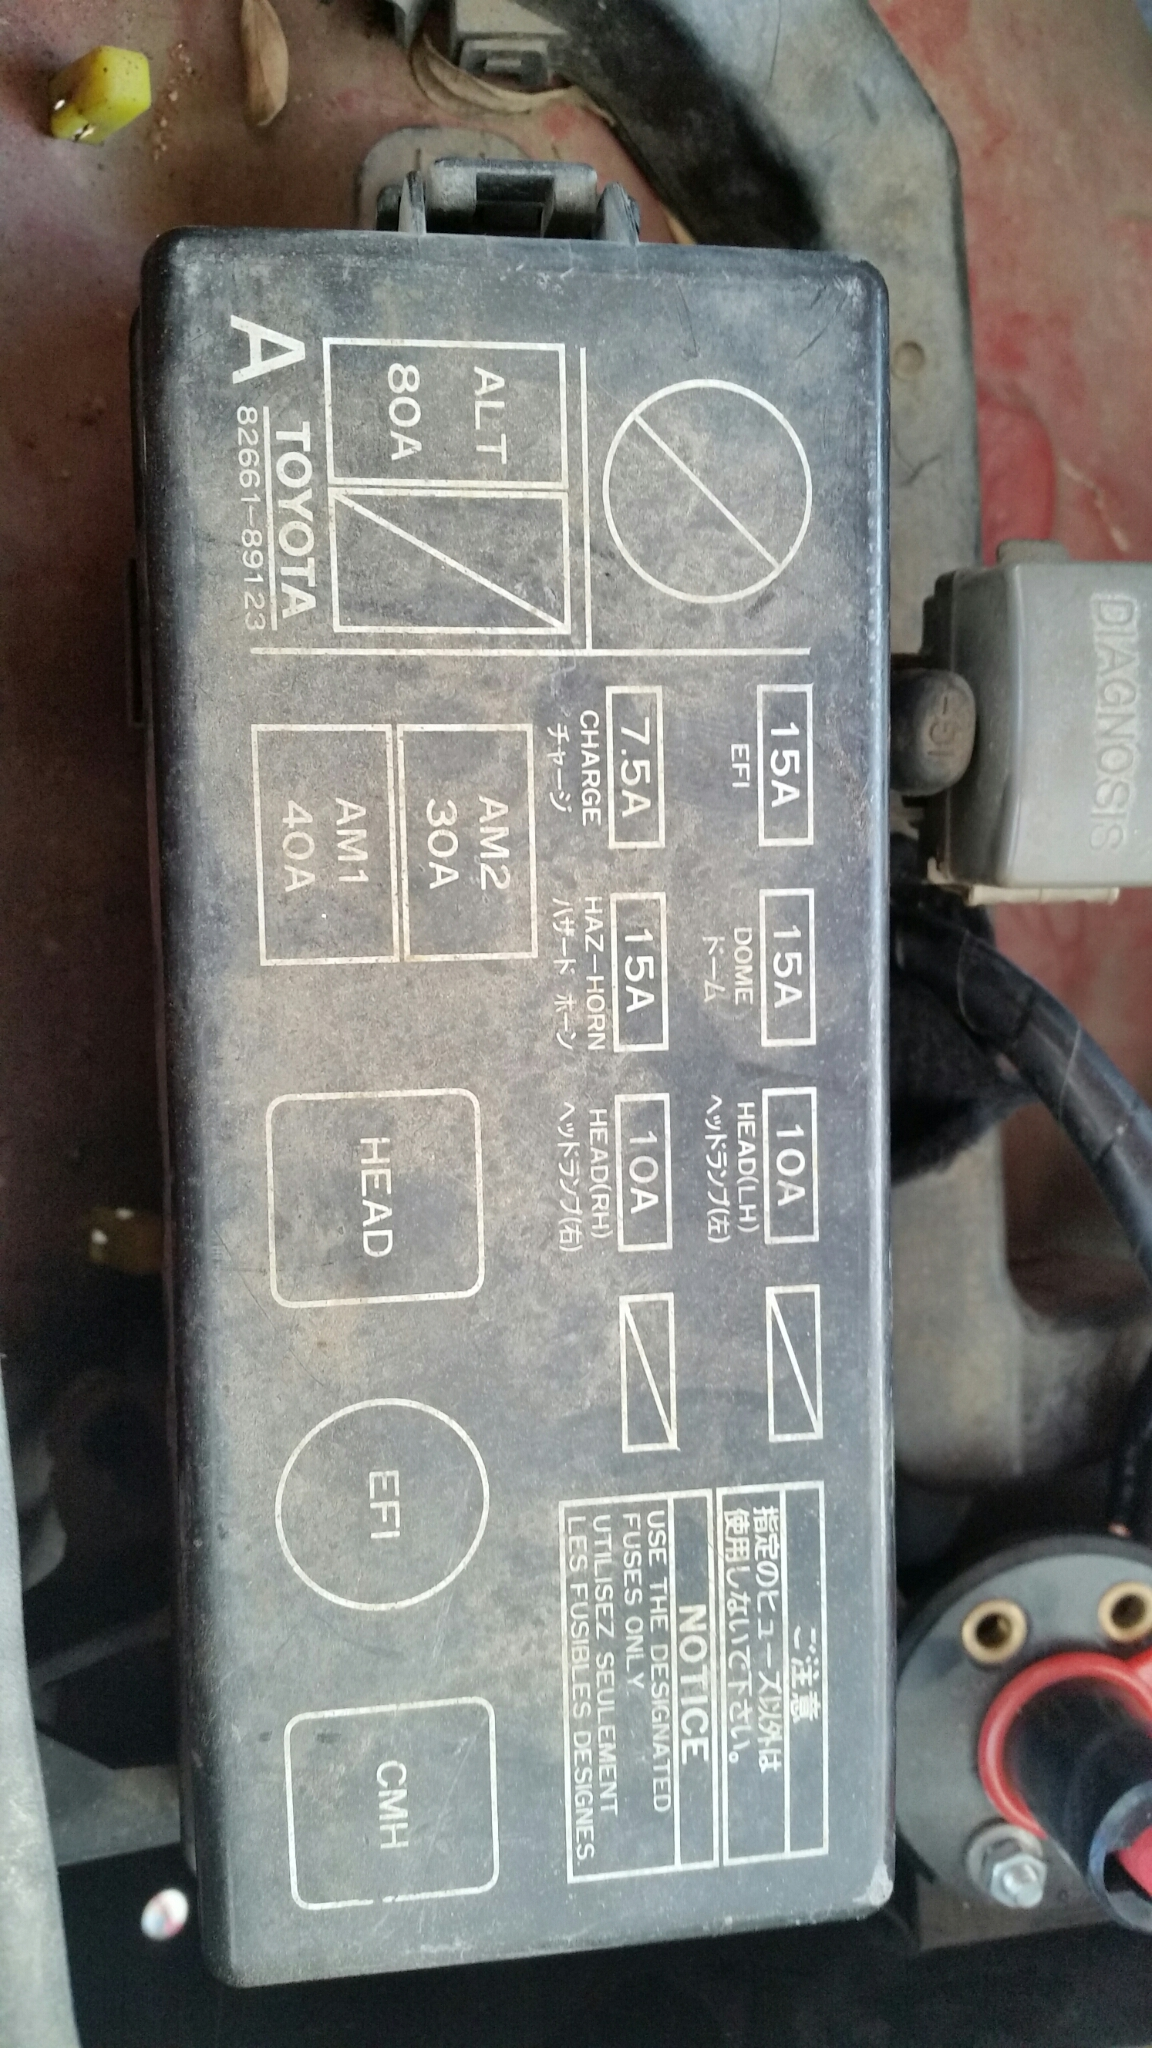 89 Toyota Pickup 22re Has A Parasitic Draw Causing Battery Drain  When I Pull The Am2 Fuse The